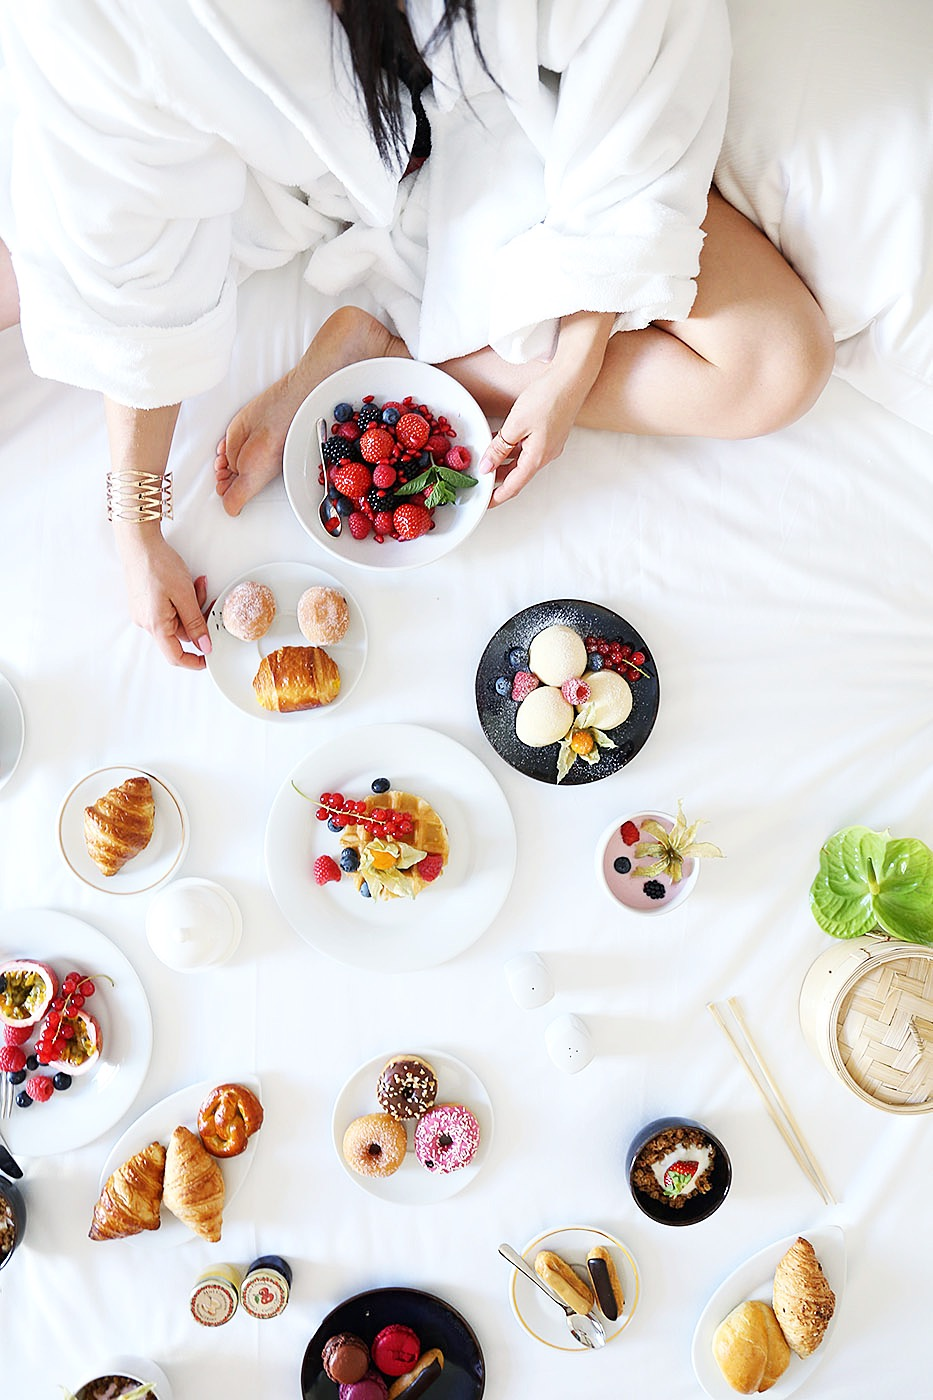 Breakfast in bed at KEMPINSKI GRAND HÔTEL DES BAINS - ST. MORITZ